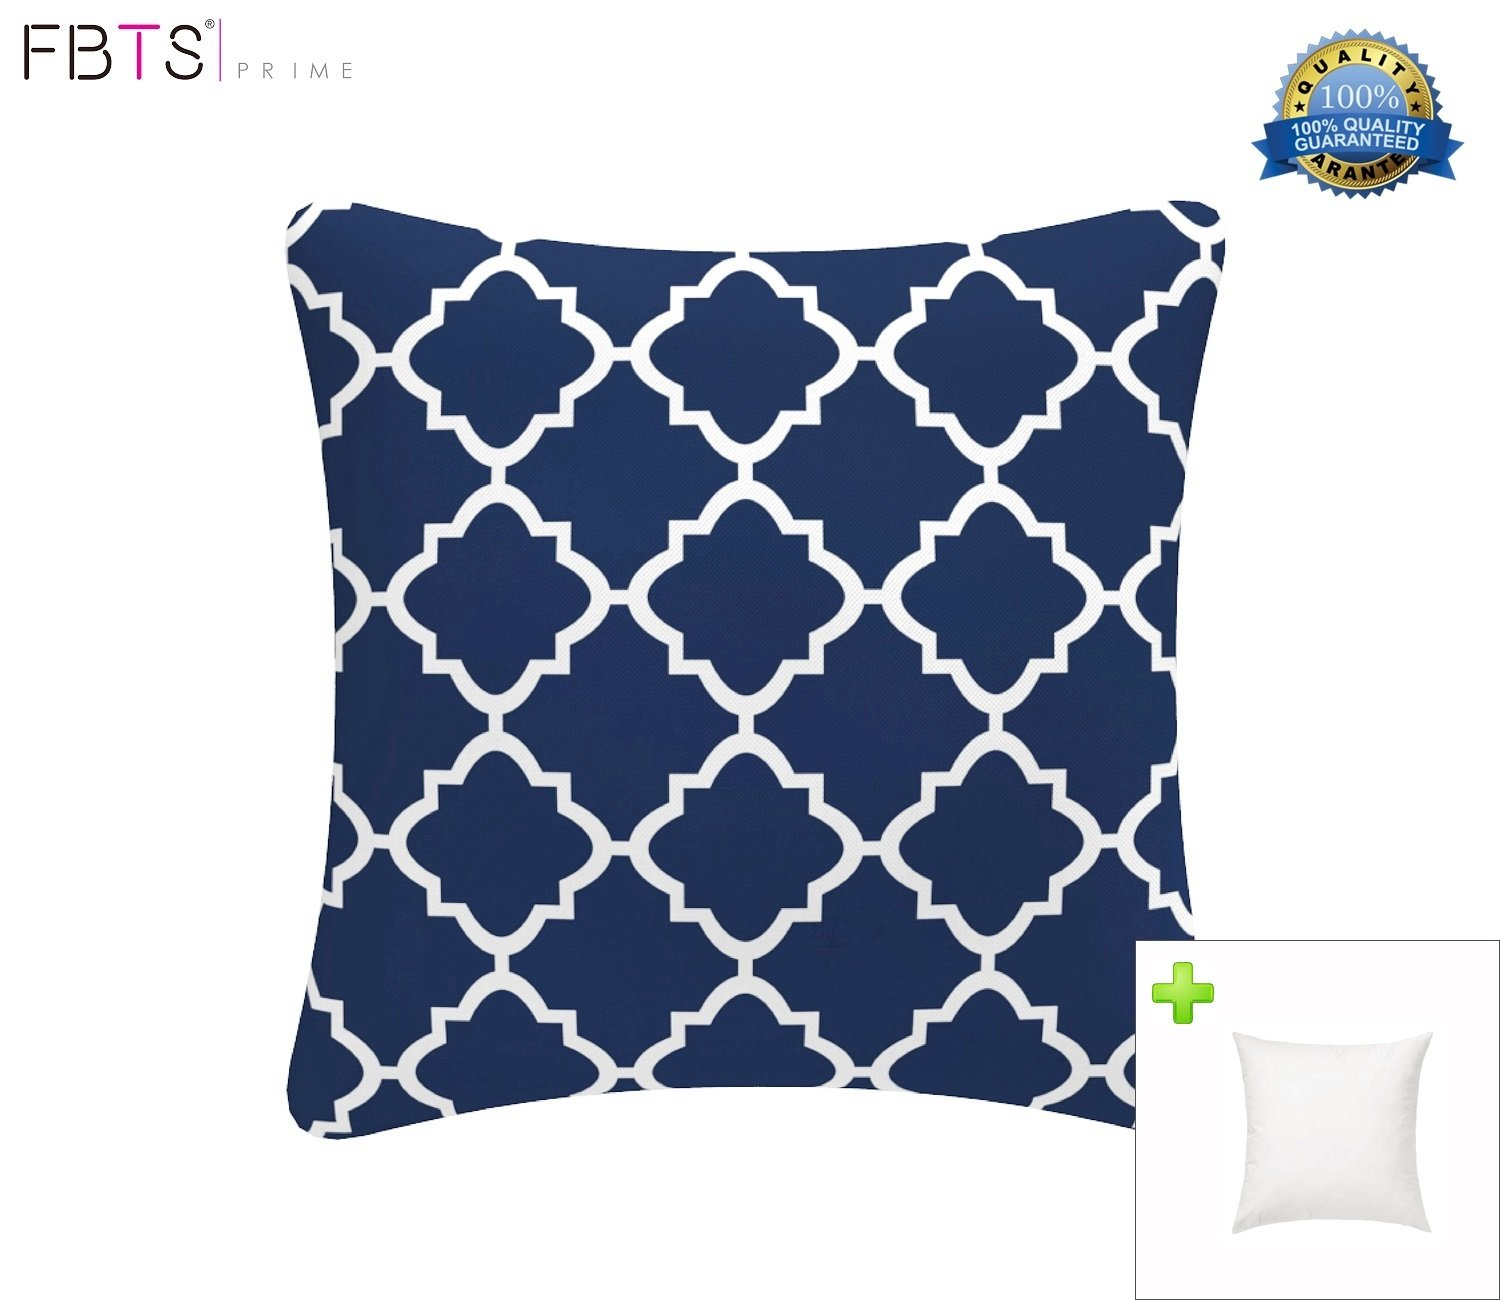 FBTS Prime Outdoor Decorative Pillows with Insert Navy Patio Accent Pillows Throw Covers 18x18 Inches Square Patio Cushions for Couch Bed Sofa Patio Furniture